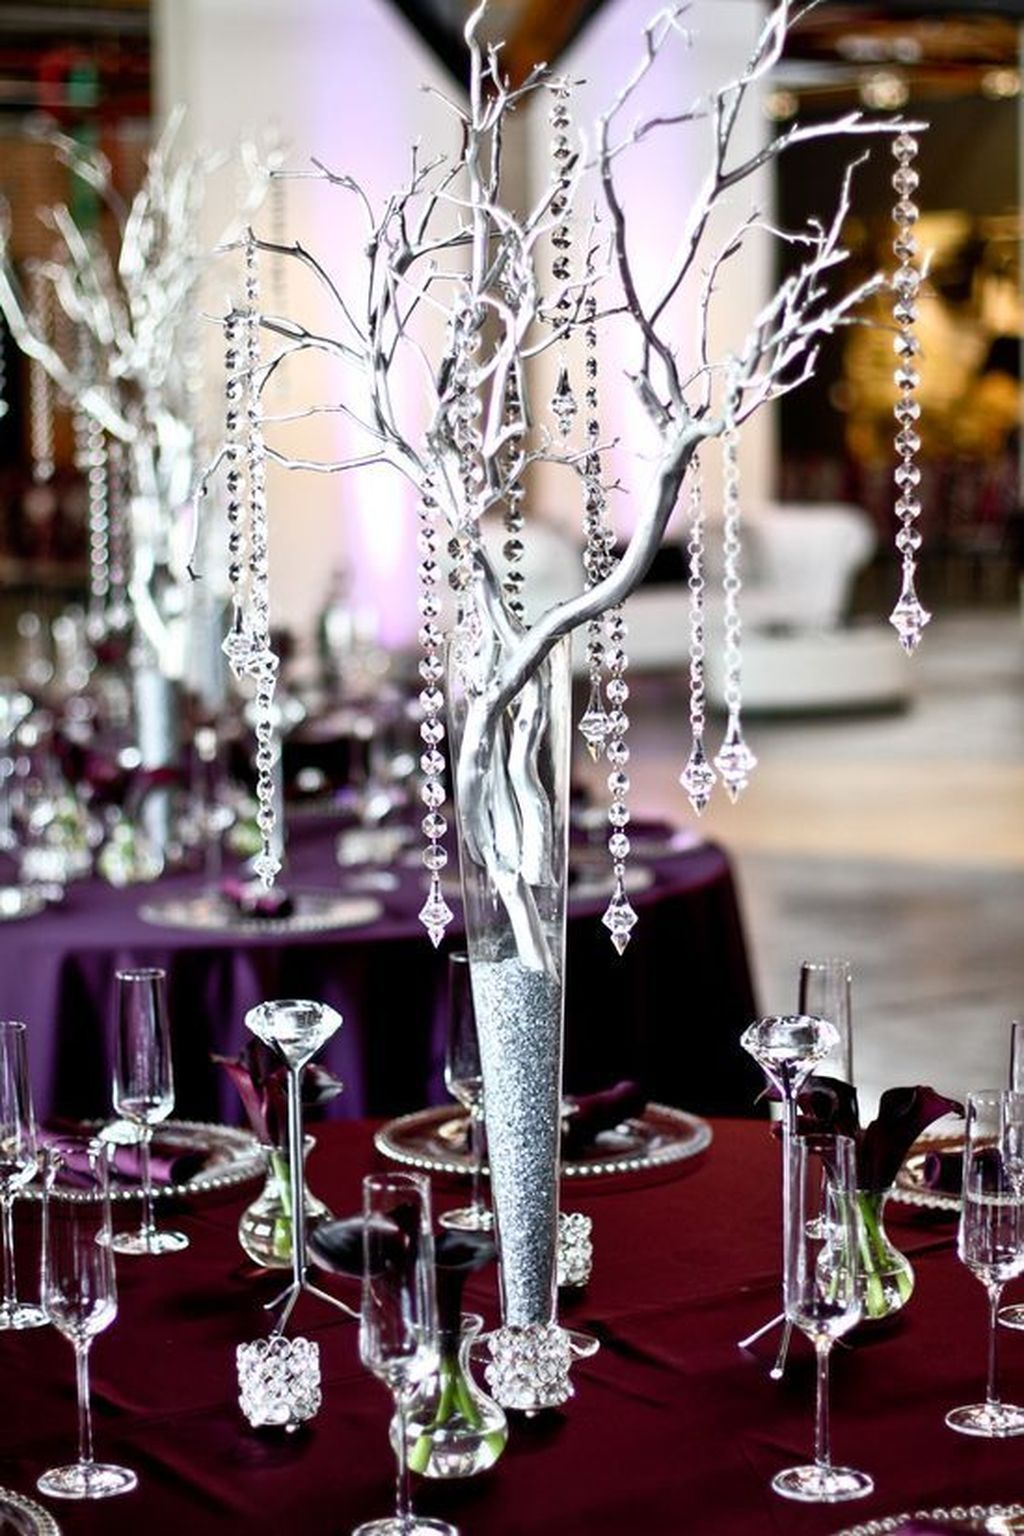 Wedding decorations list  Pin by Creatrix Photography on Winter Wedding Inspo  Pinterest